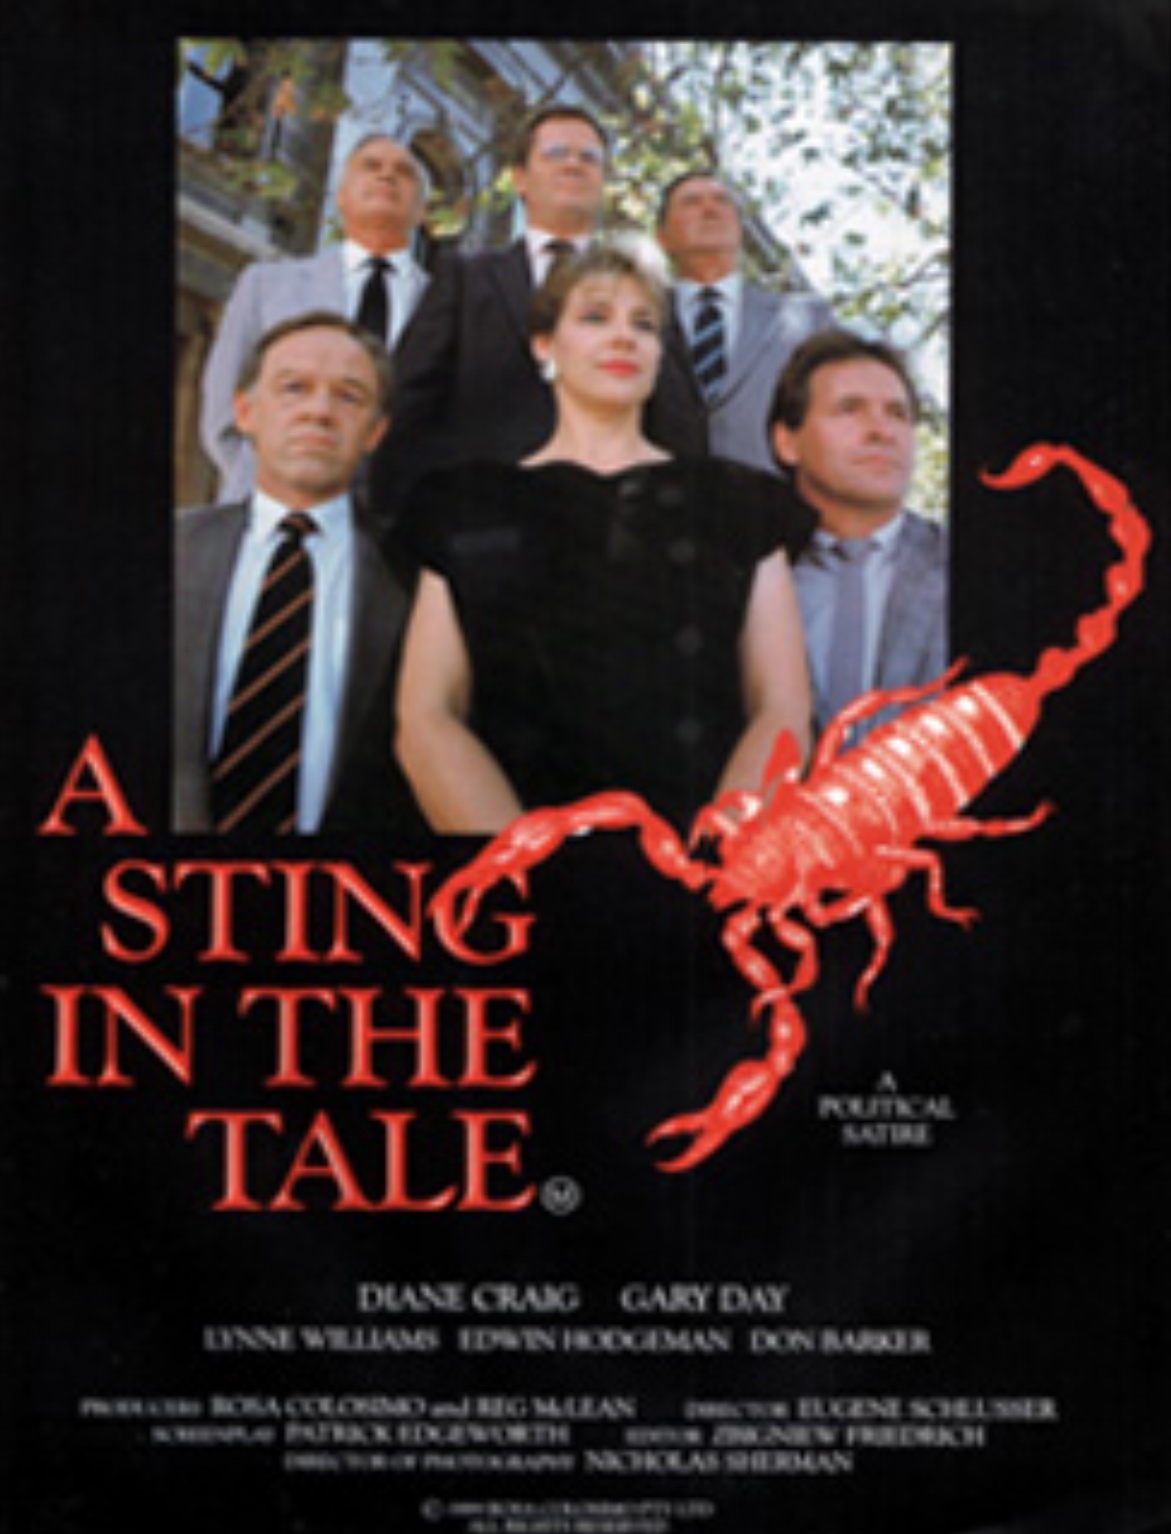 A Sting in the Tale ((1989))